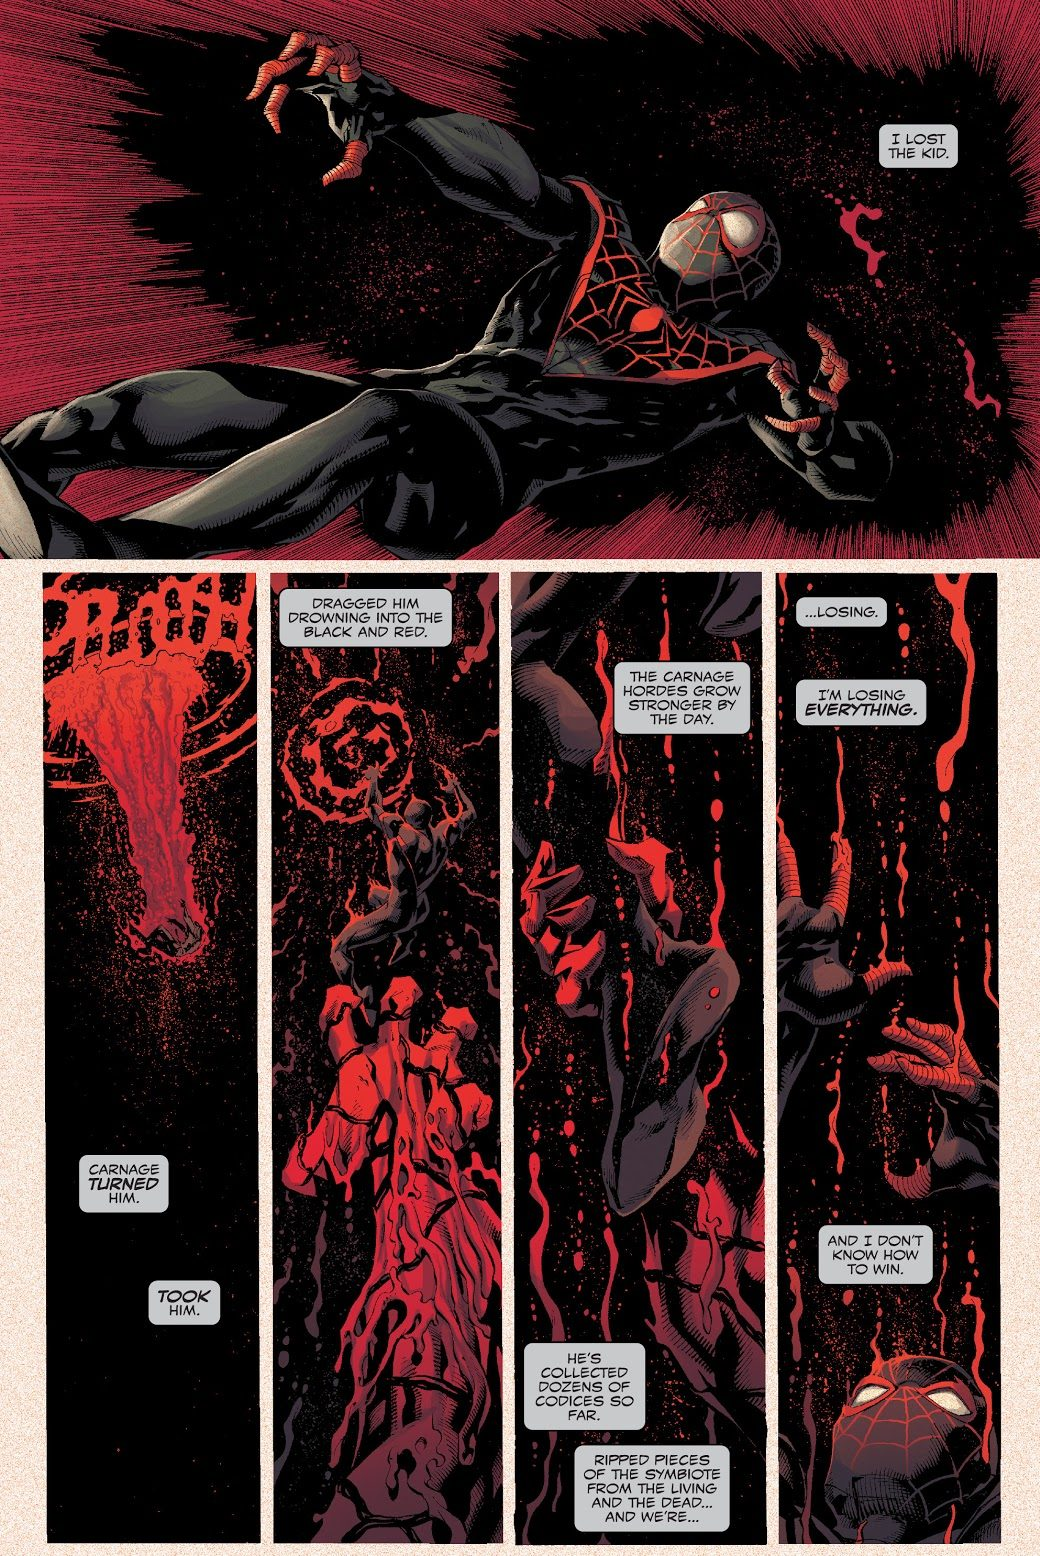 Miles Morales Bonds With The Grendel Symbiote